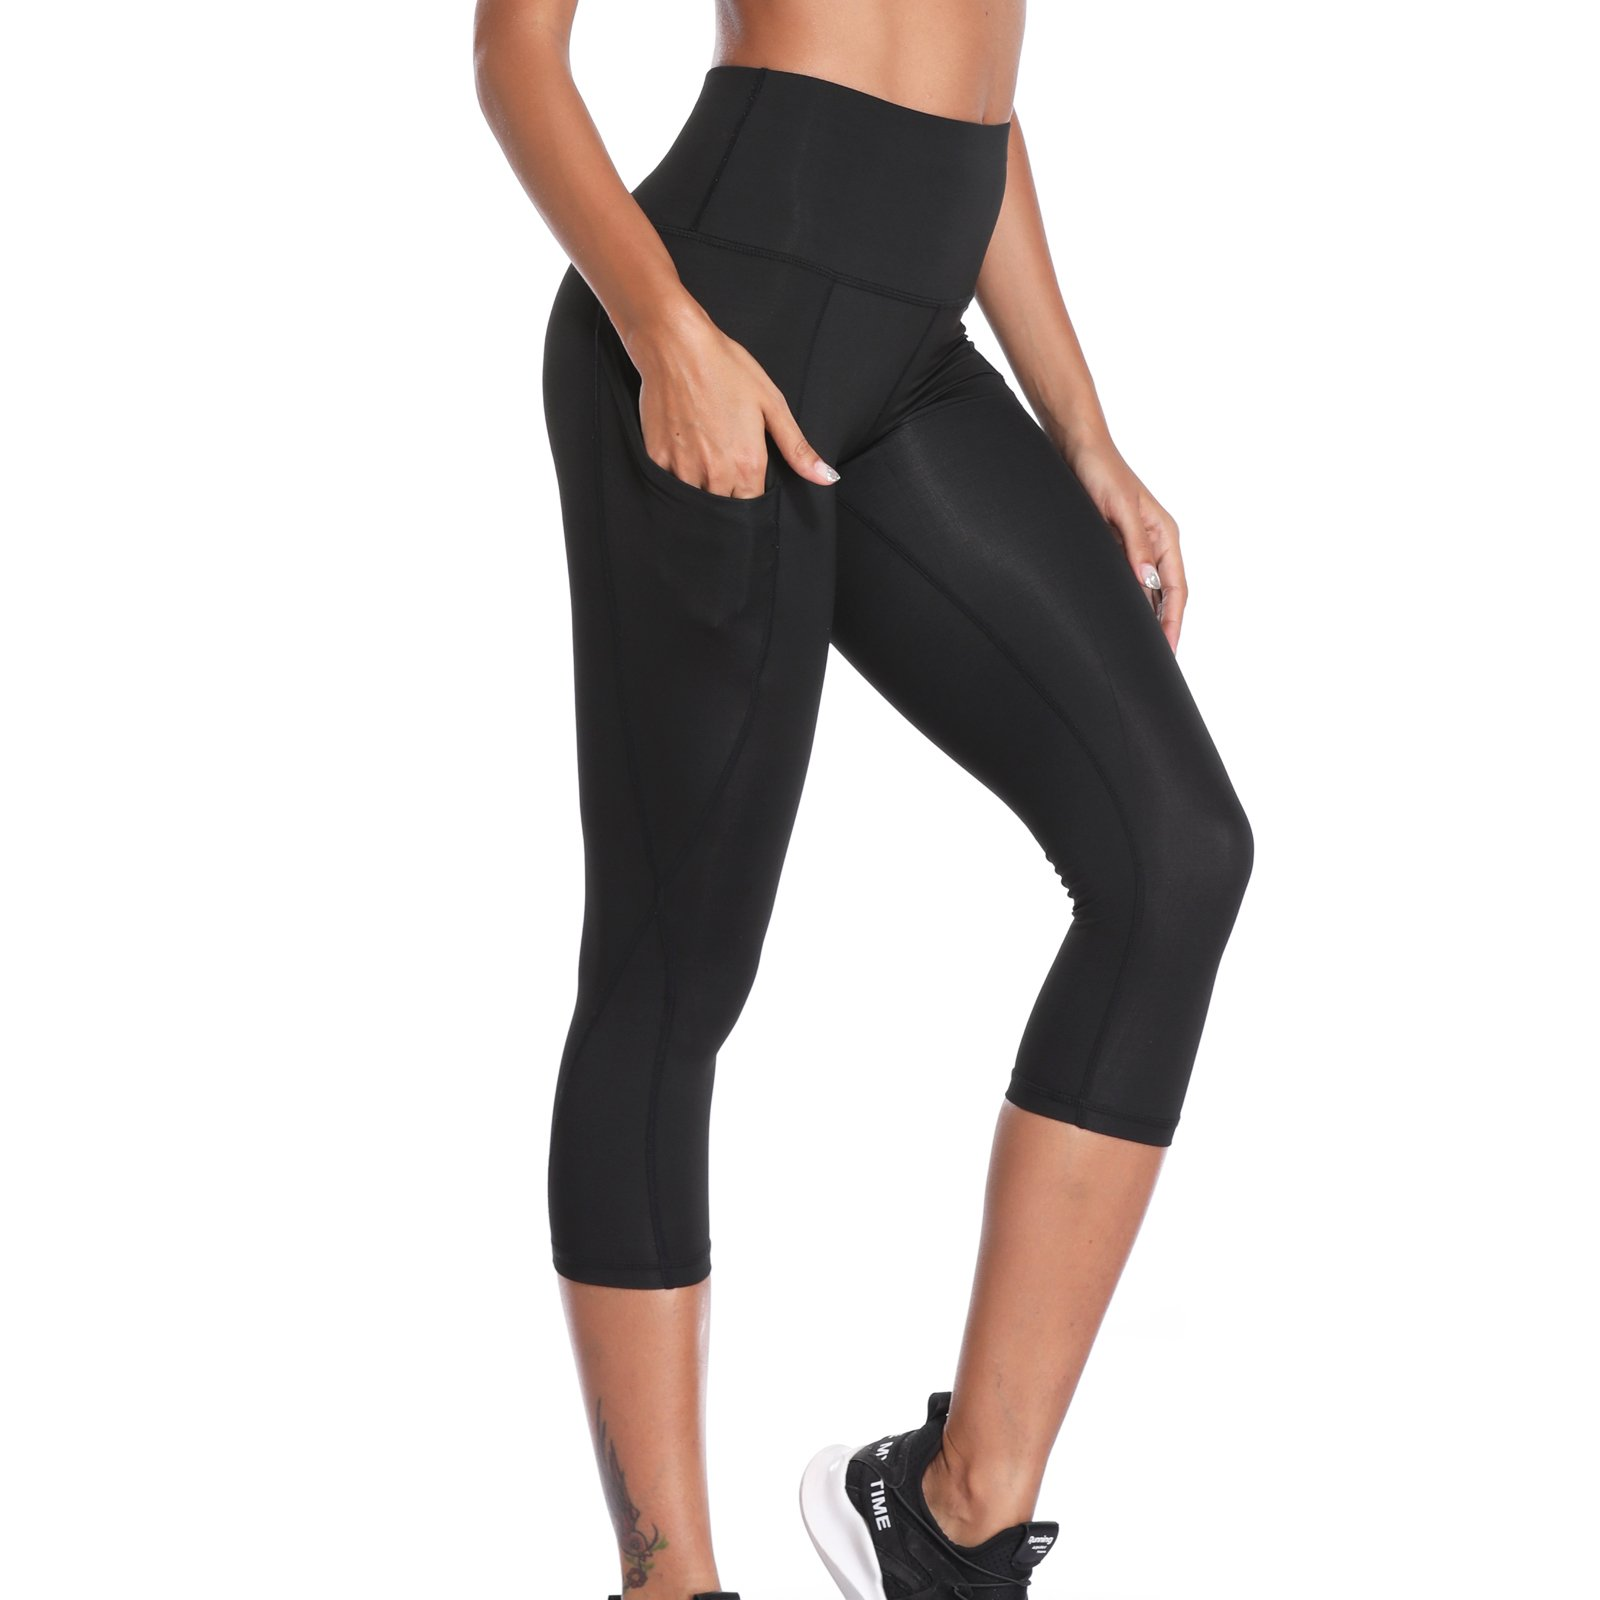 amazon a few days away best place for Joyshaper Gym Leggings with Pockets Women 3/4 Length Cropped ...